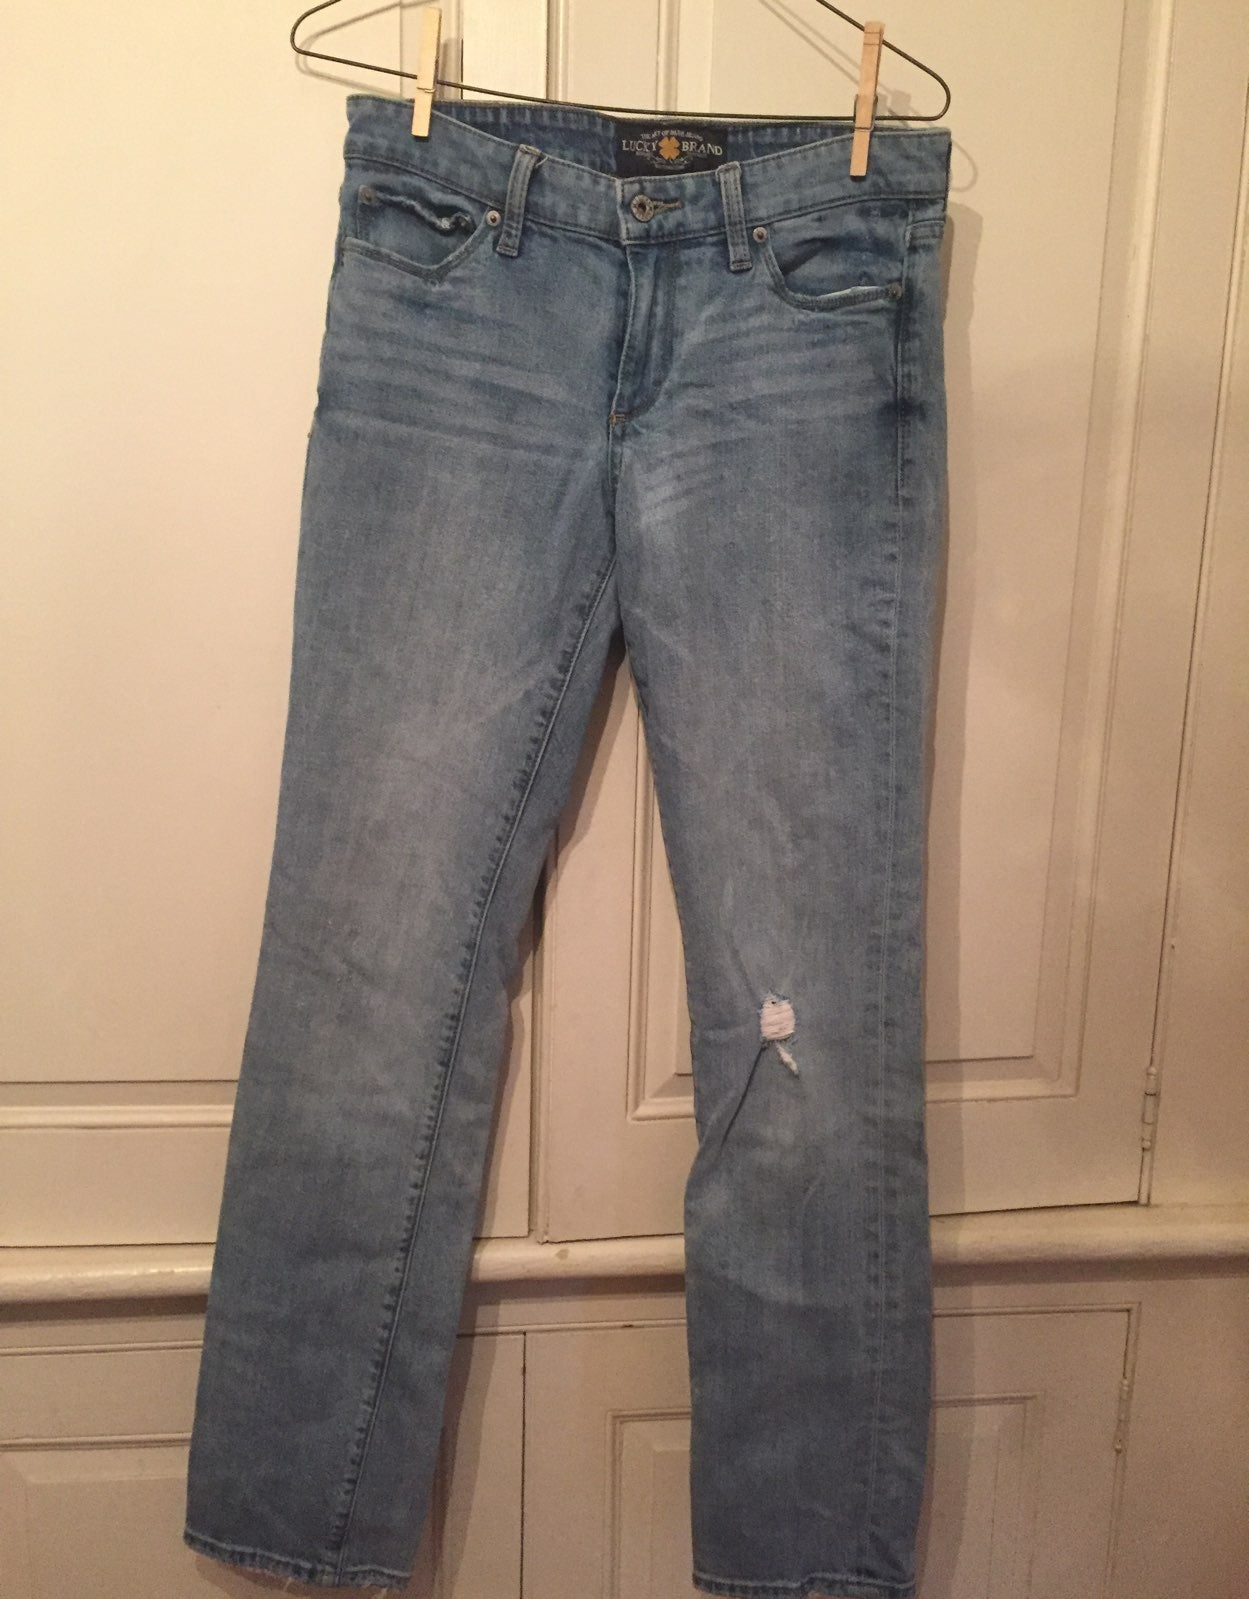 Lucky Brand Skinny Jeans - size 4/27R